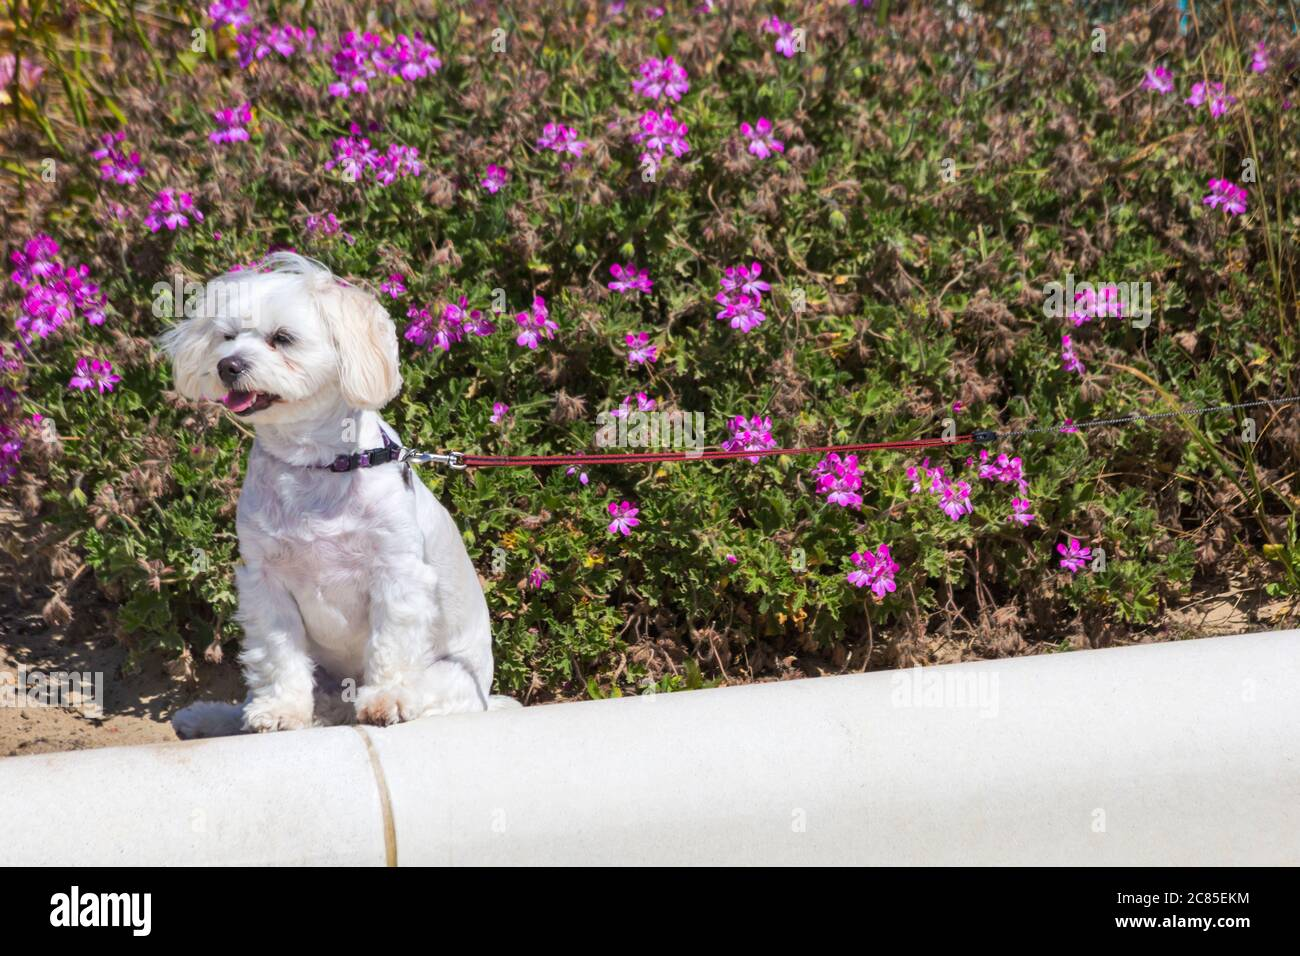 Maltese Terrier High Resolution Stock Photography And Images Alamy